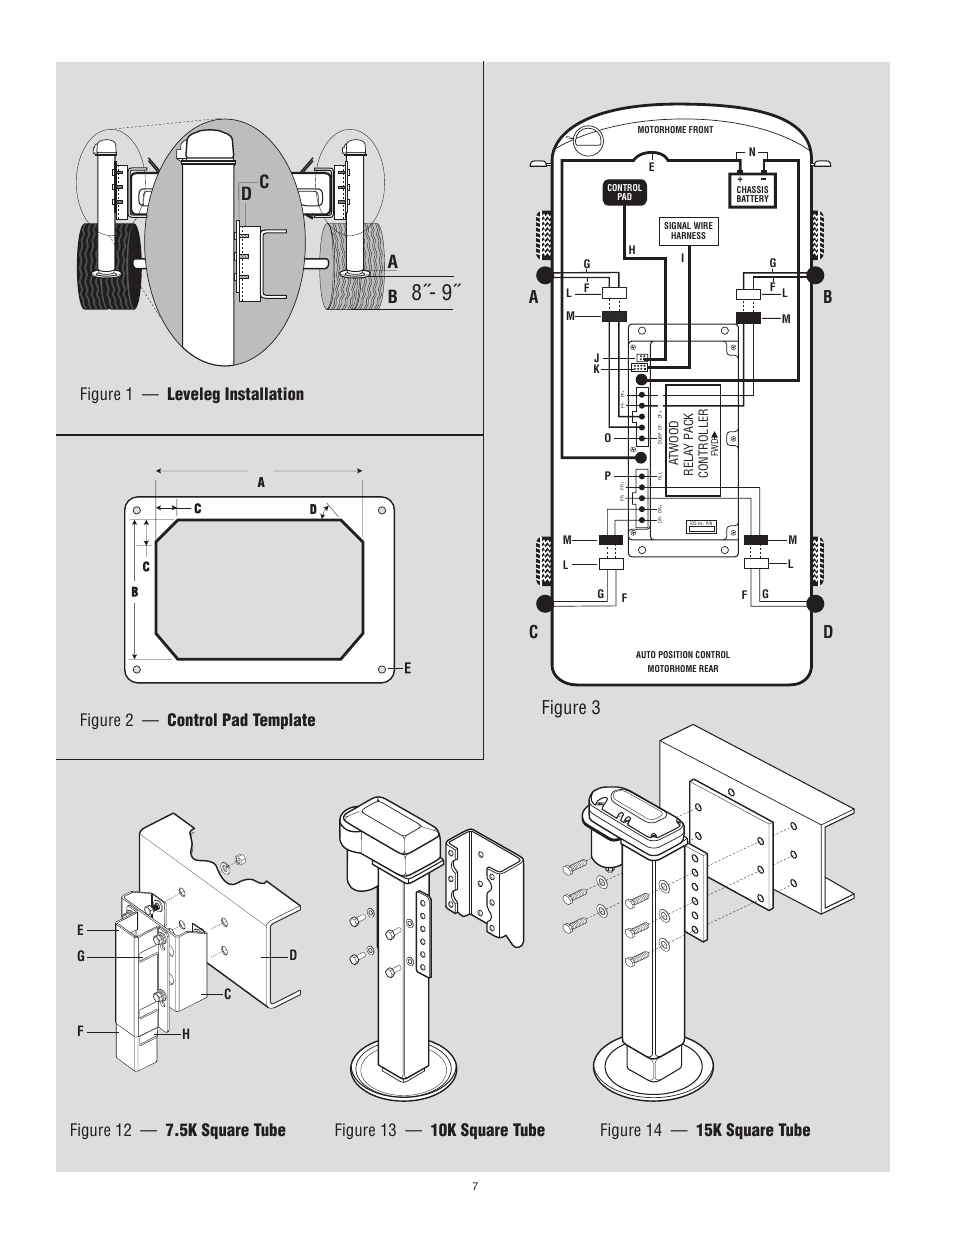 Panasonic Car Battery >> Figure 3 | atwood Levelegs System User Manual | Page 7 / 7